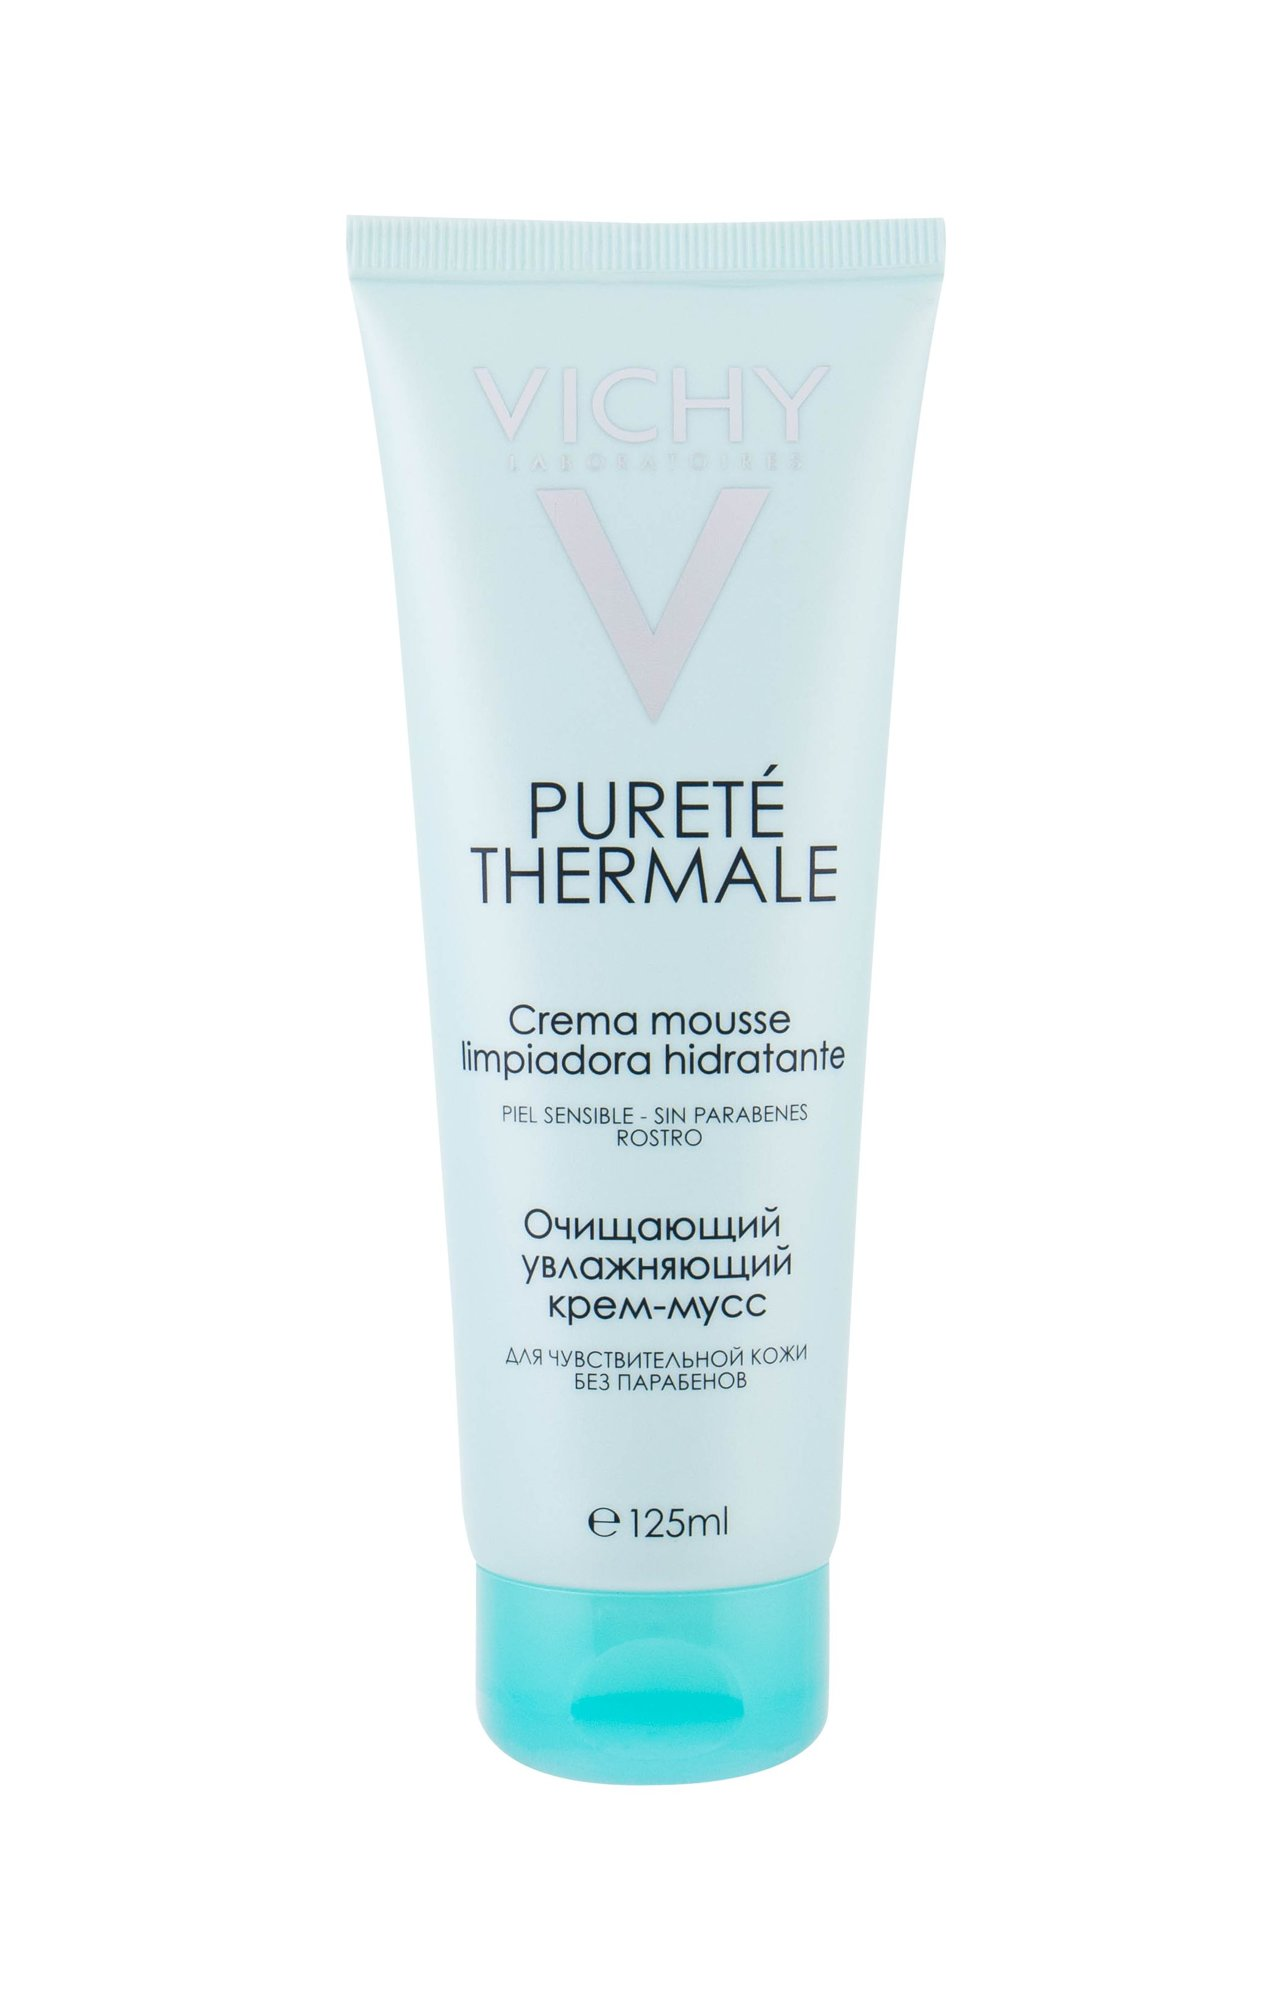 Vichy Purete Thermale Cleansing Cream 125ml